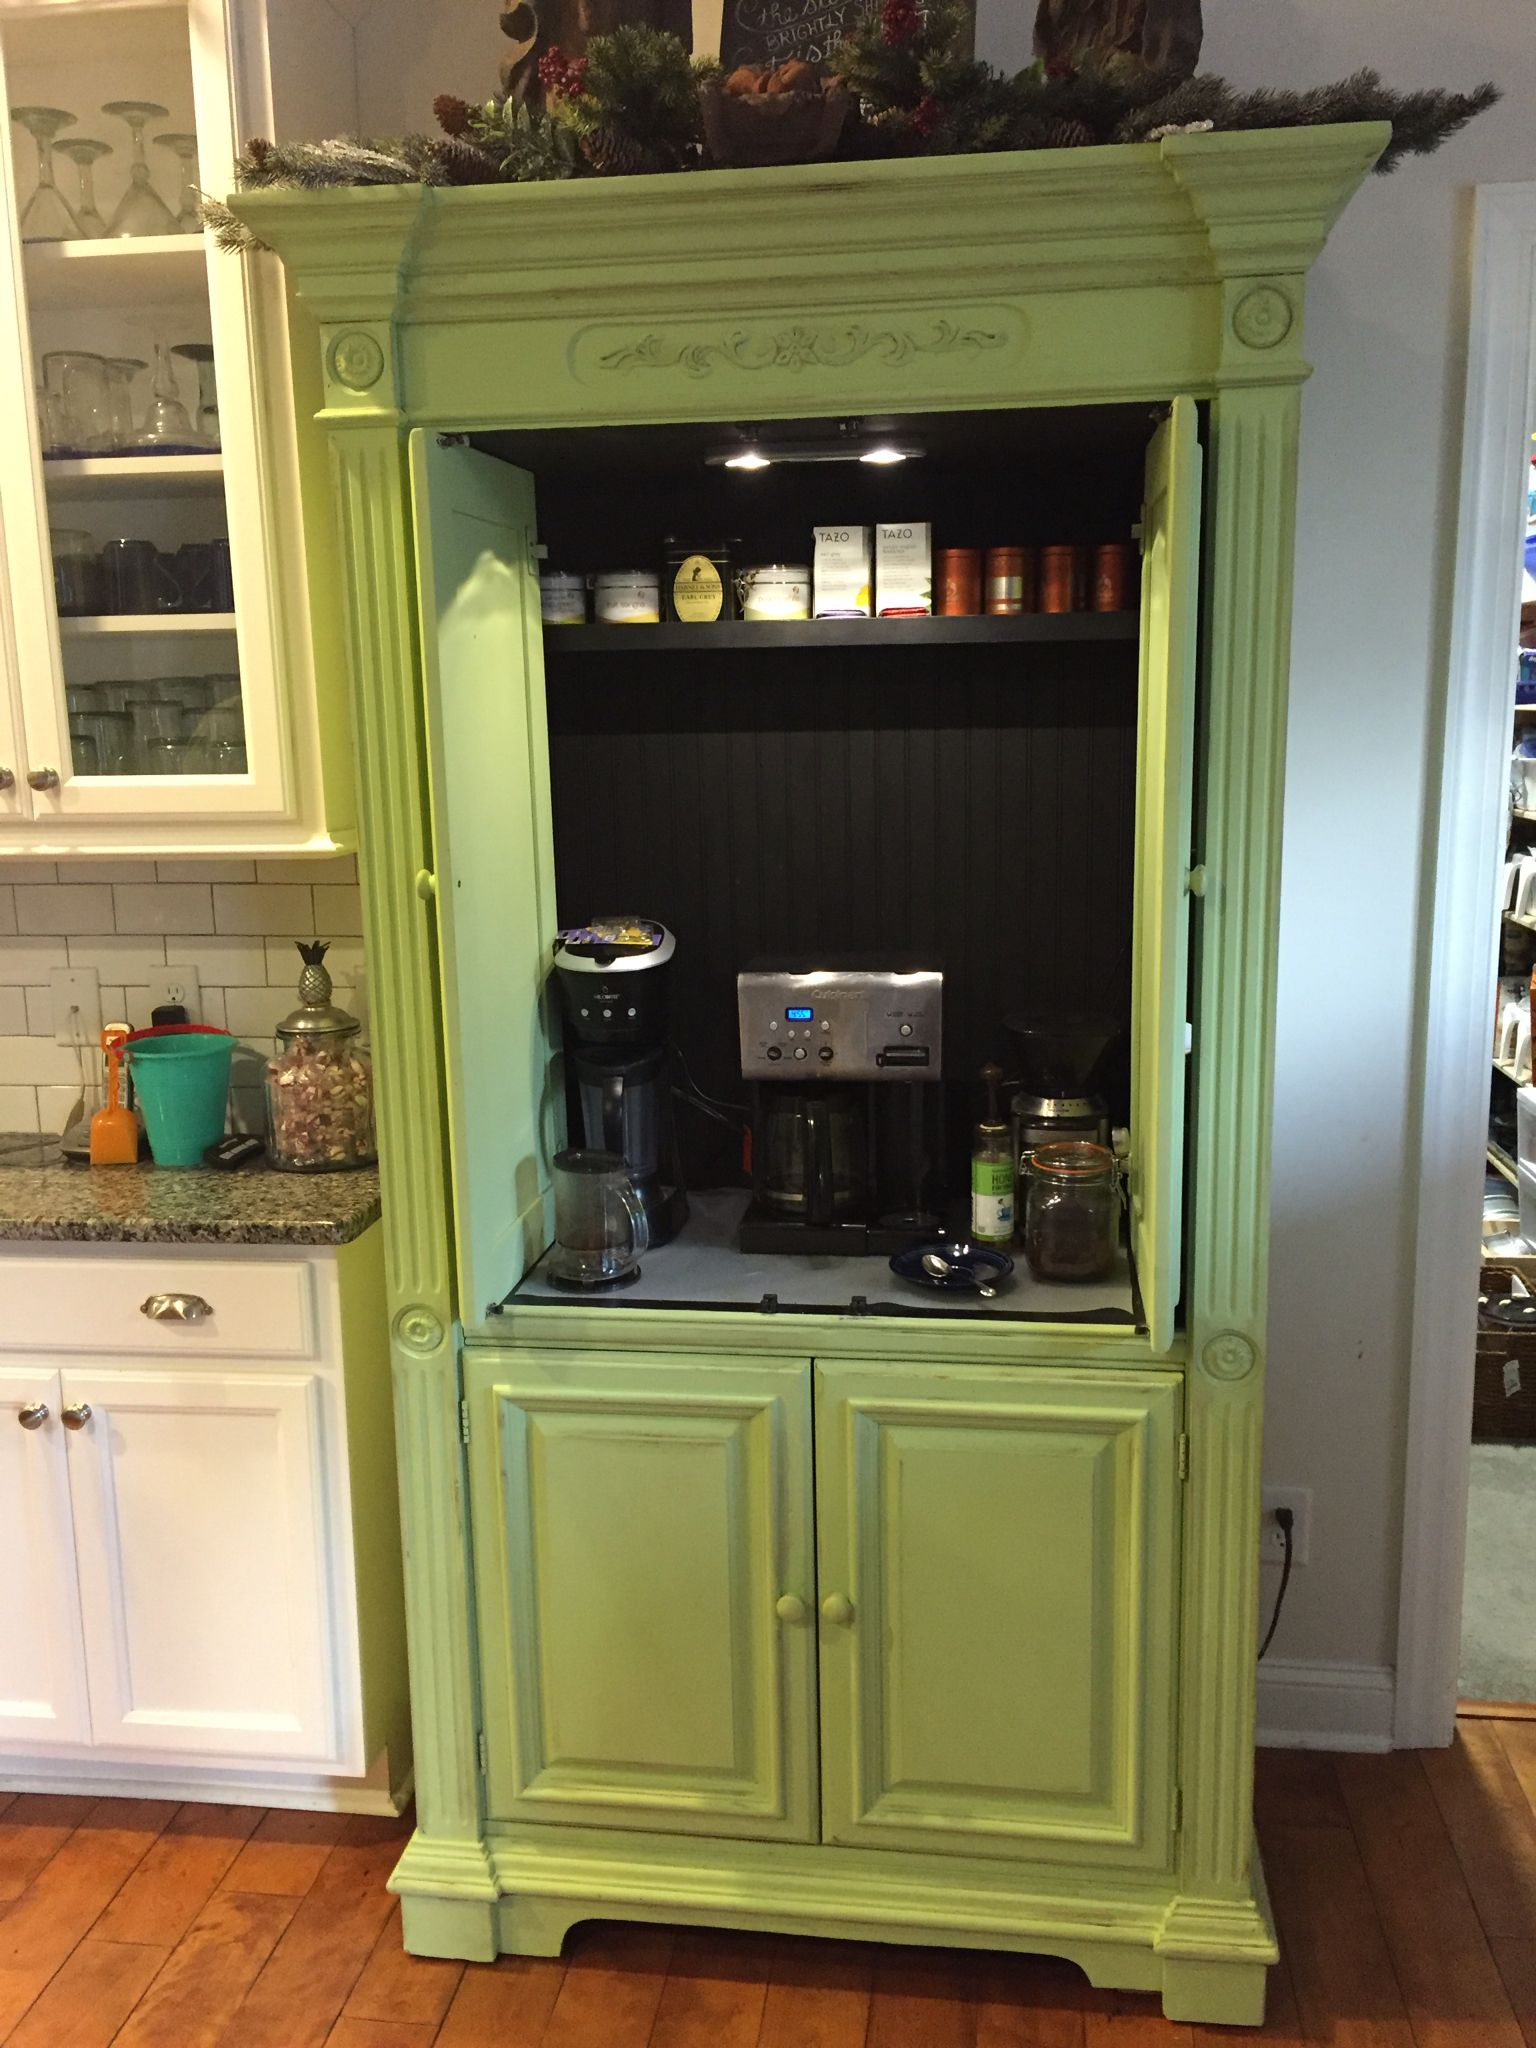 88d01351dfc4 Entertainment center painted and converted into a coffee and tea bar. Great  pop of green in a white kitchen.